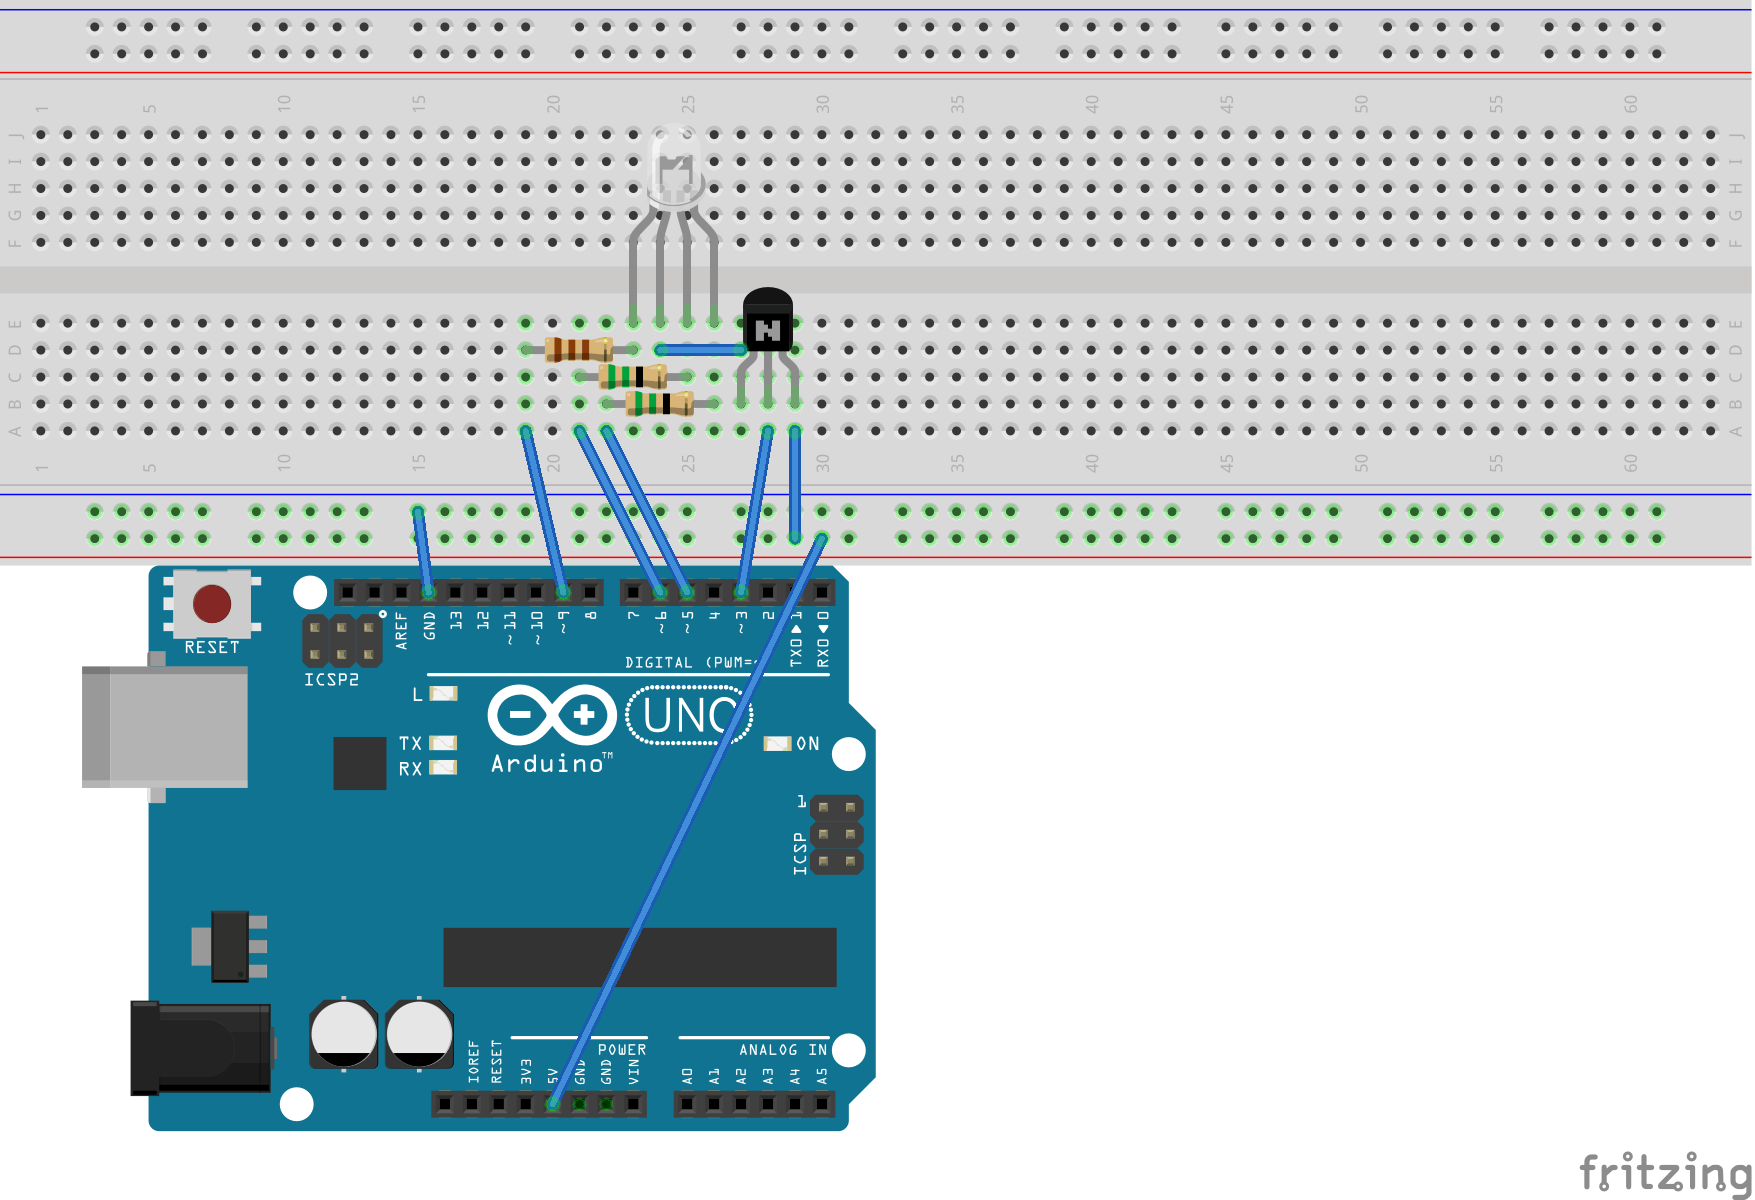 Circuit for controlling the brightness/color of an RGB LED.